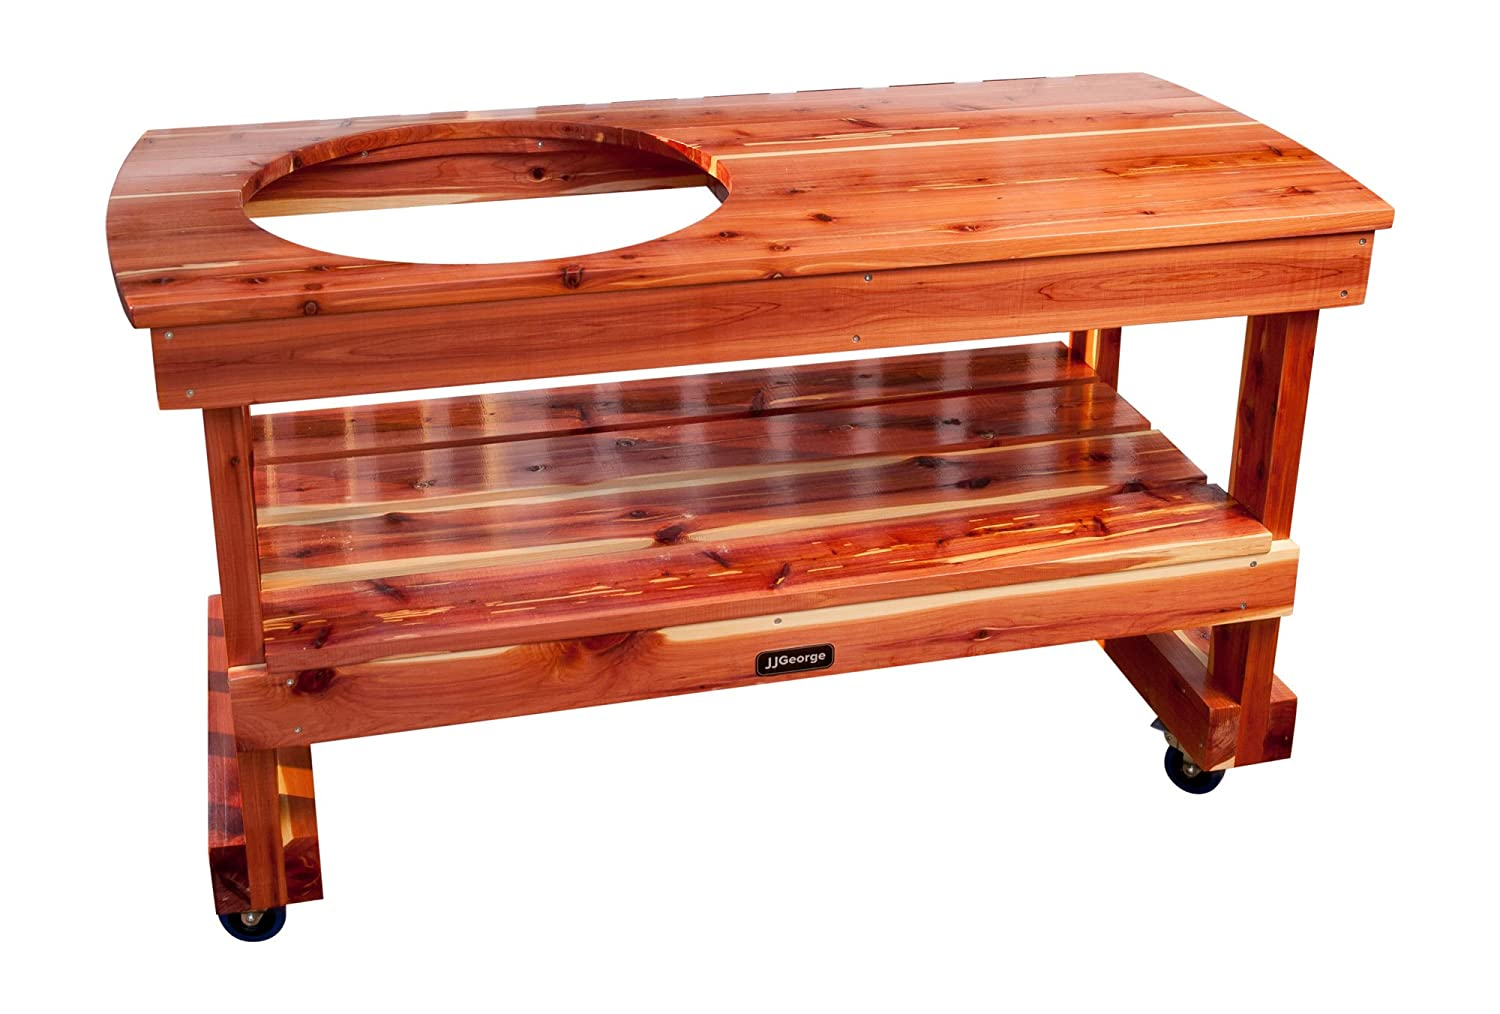 JJ George Big Green Egg Table (Long Table for Large Egg) Table Cover Included